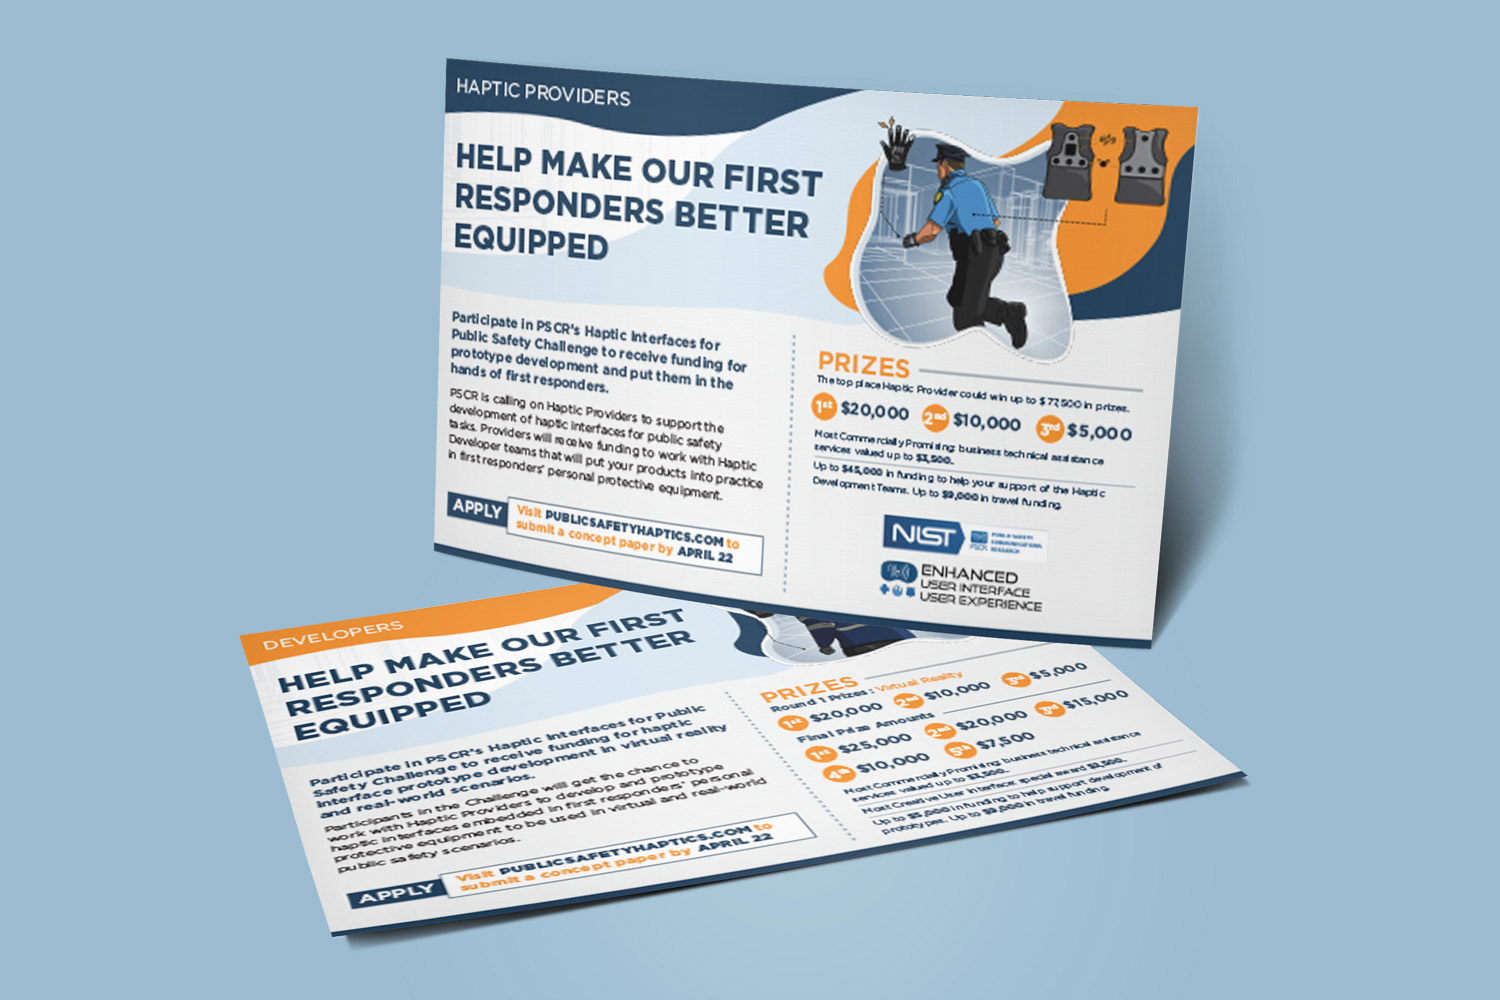 a front and back view of a marketing postcard for the National Institute of Science and Technology's Haptics challenge